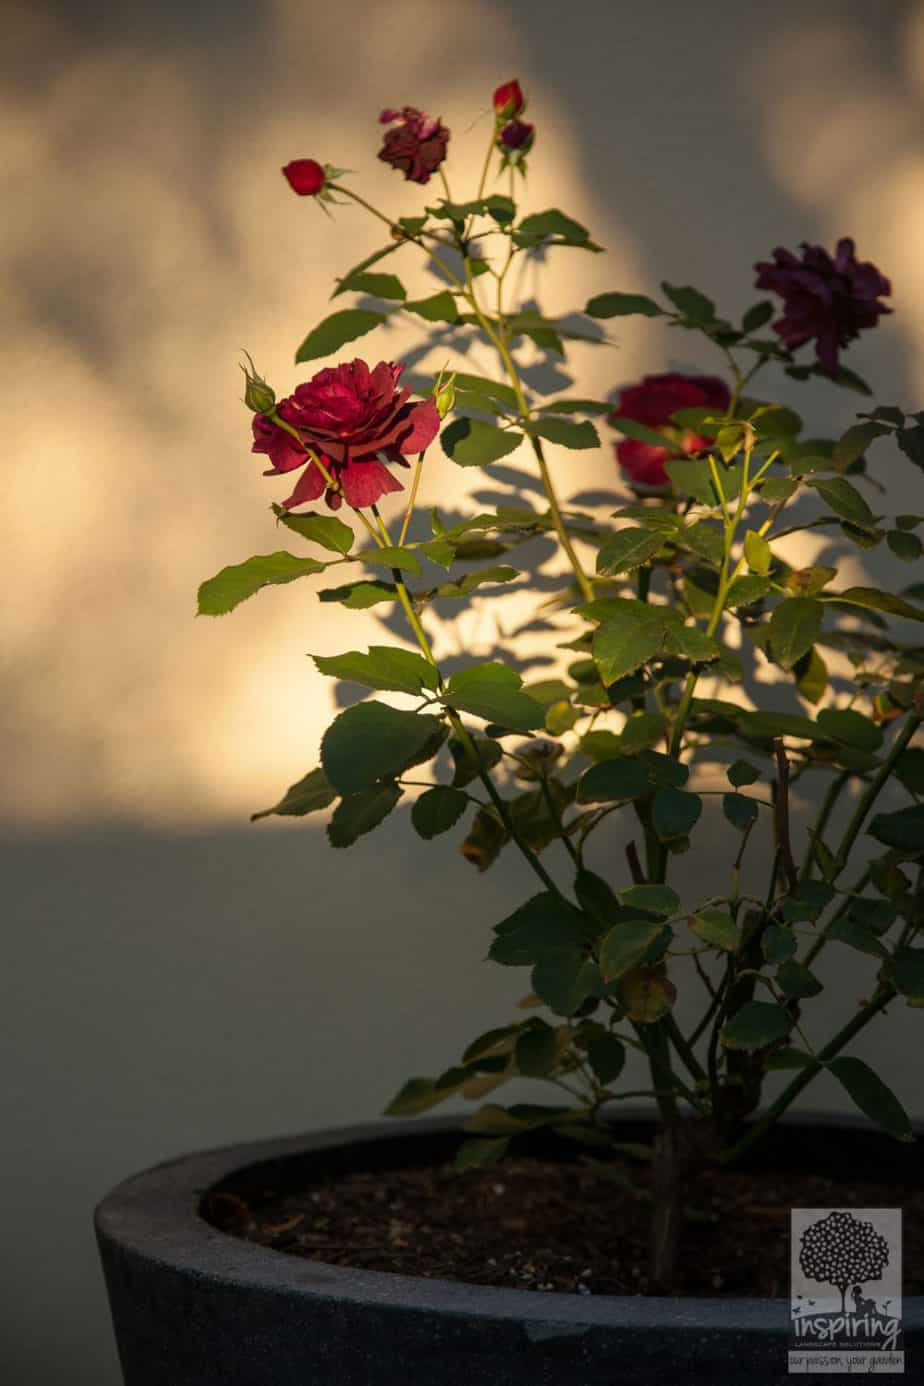 Red rose in pot in the evening dusk